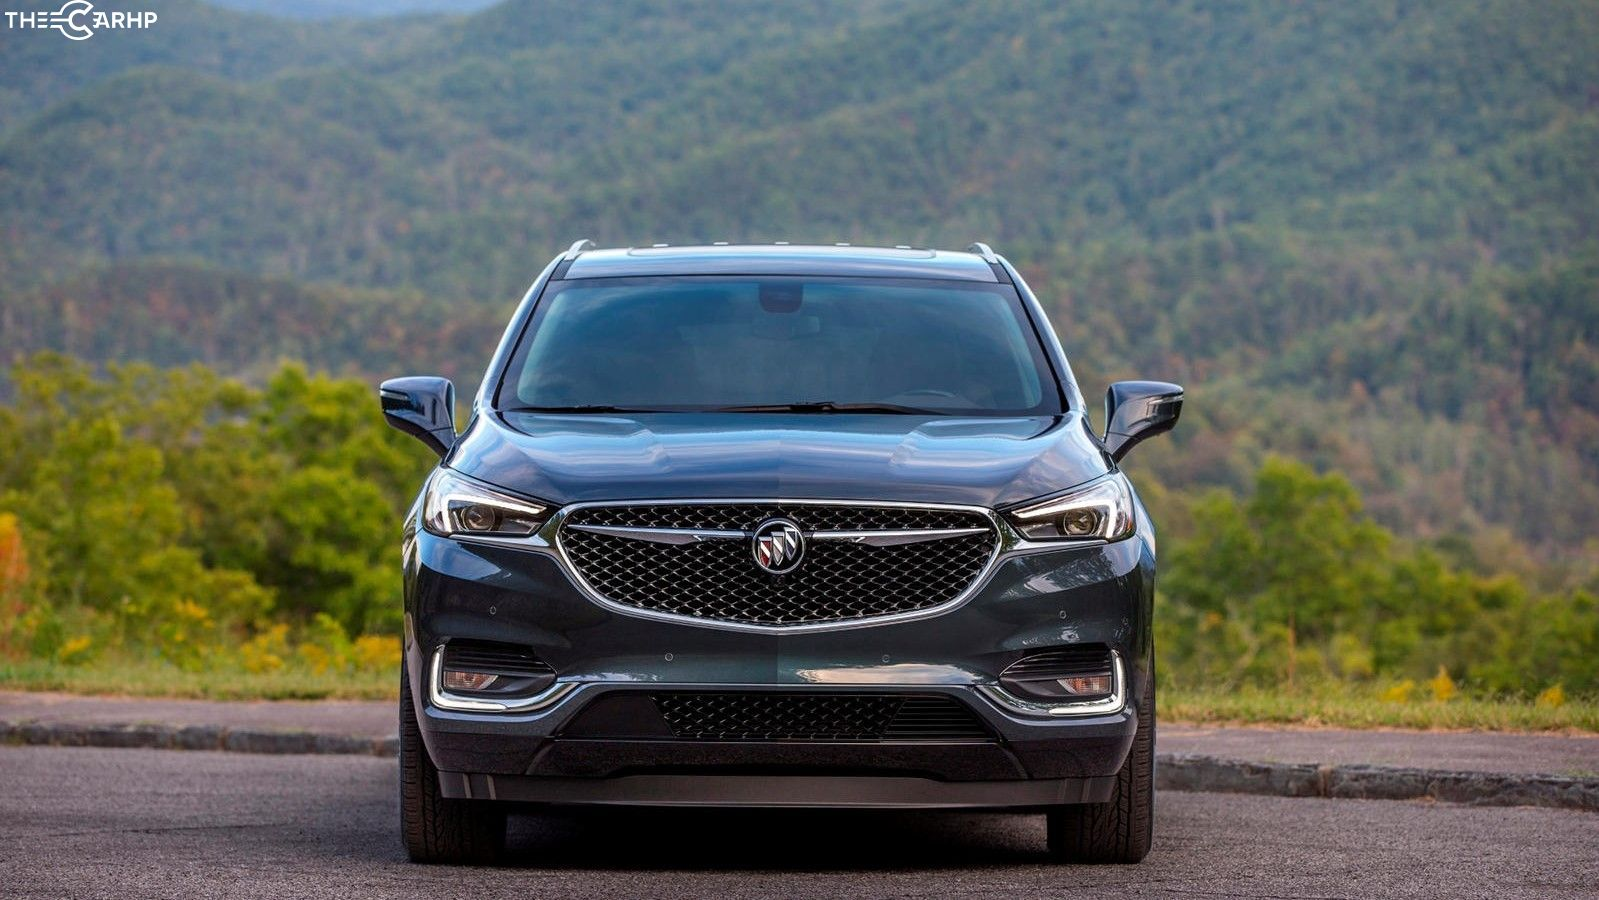 2021 Buick Enclave Front View